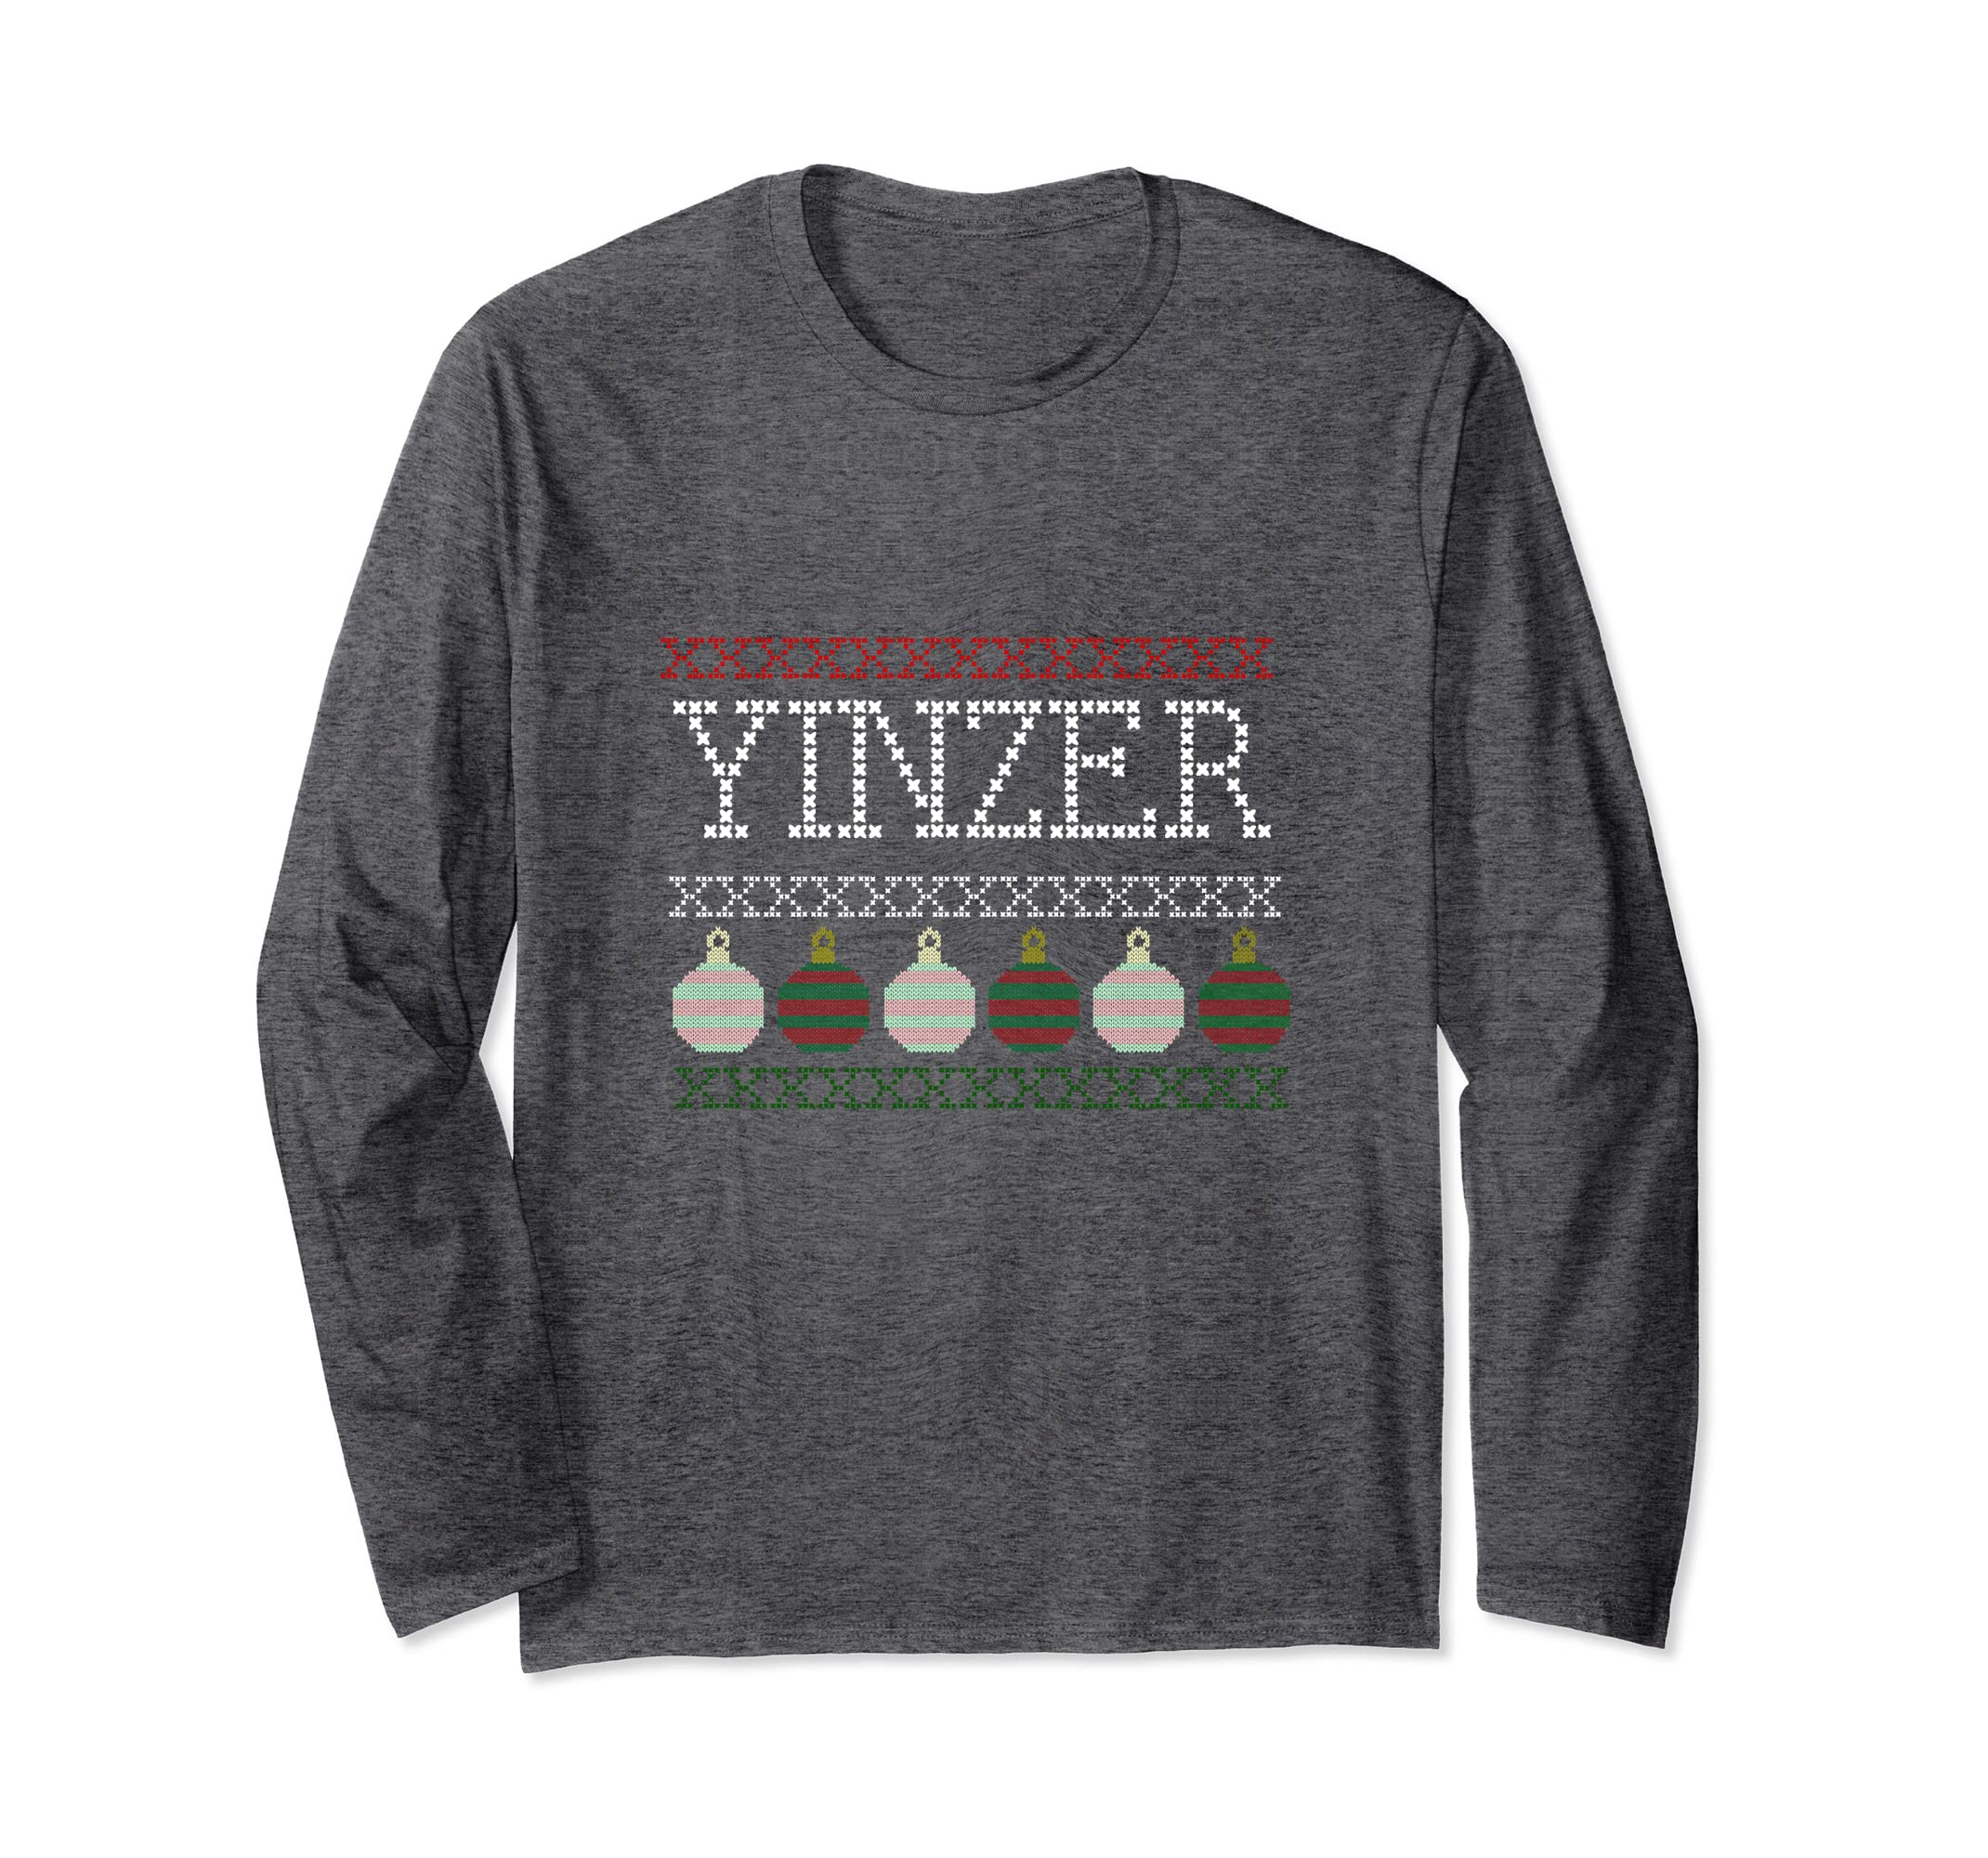 Amazon com: Yinzer Funny Holiday Ugly Sweater Font Long